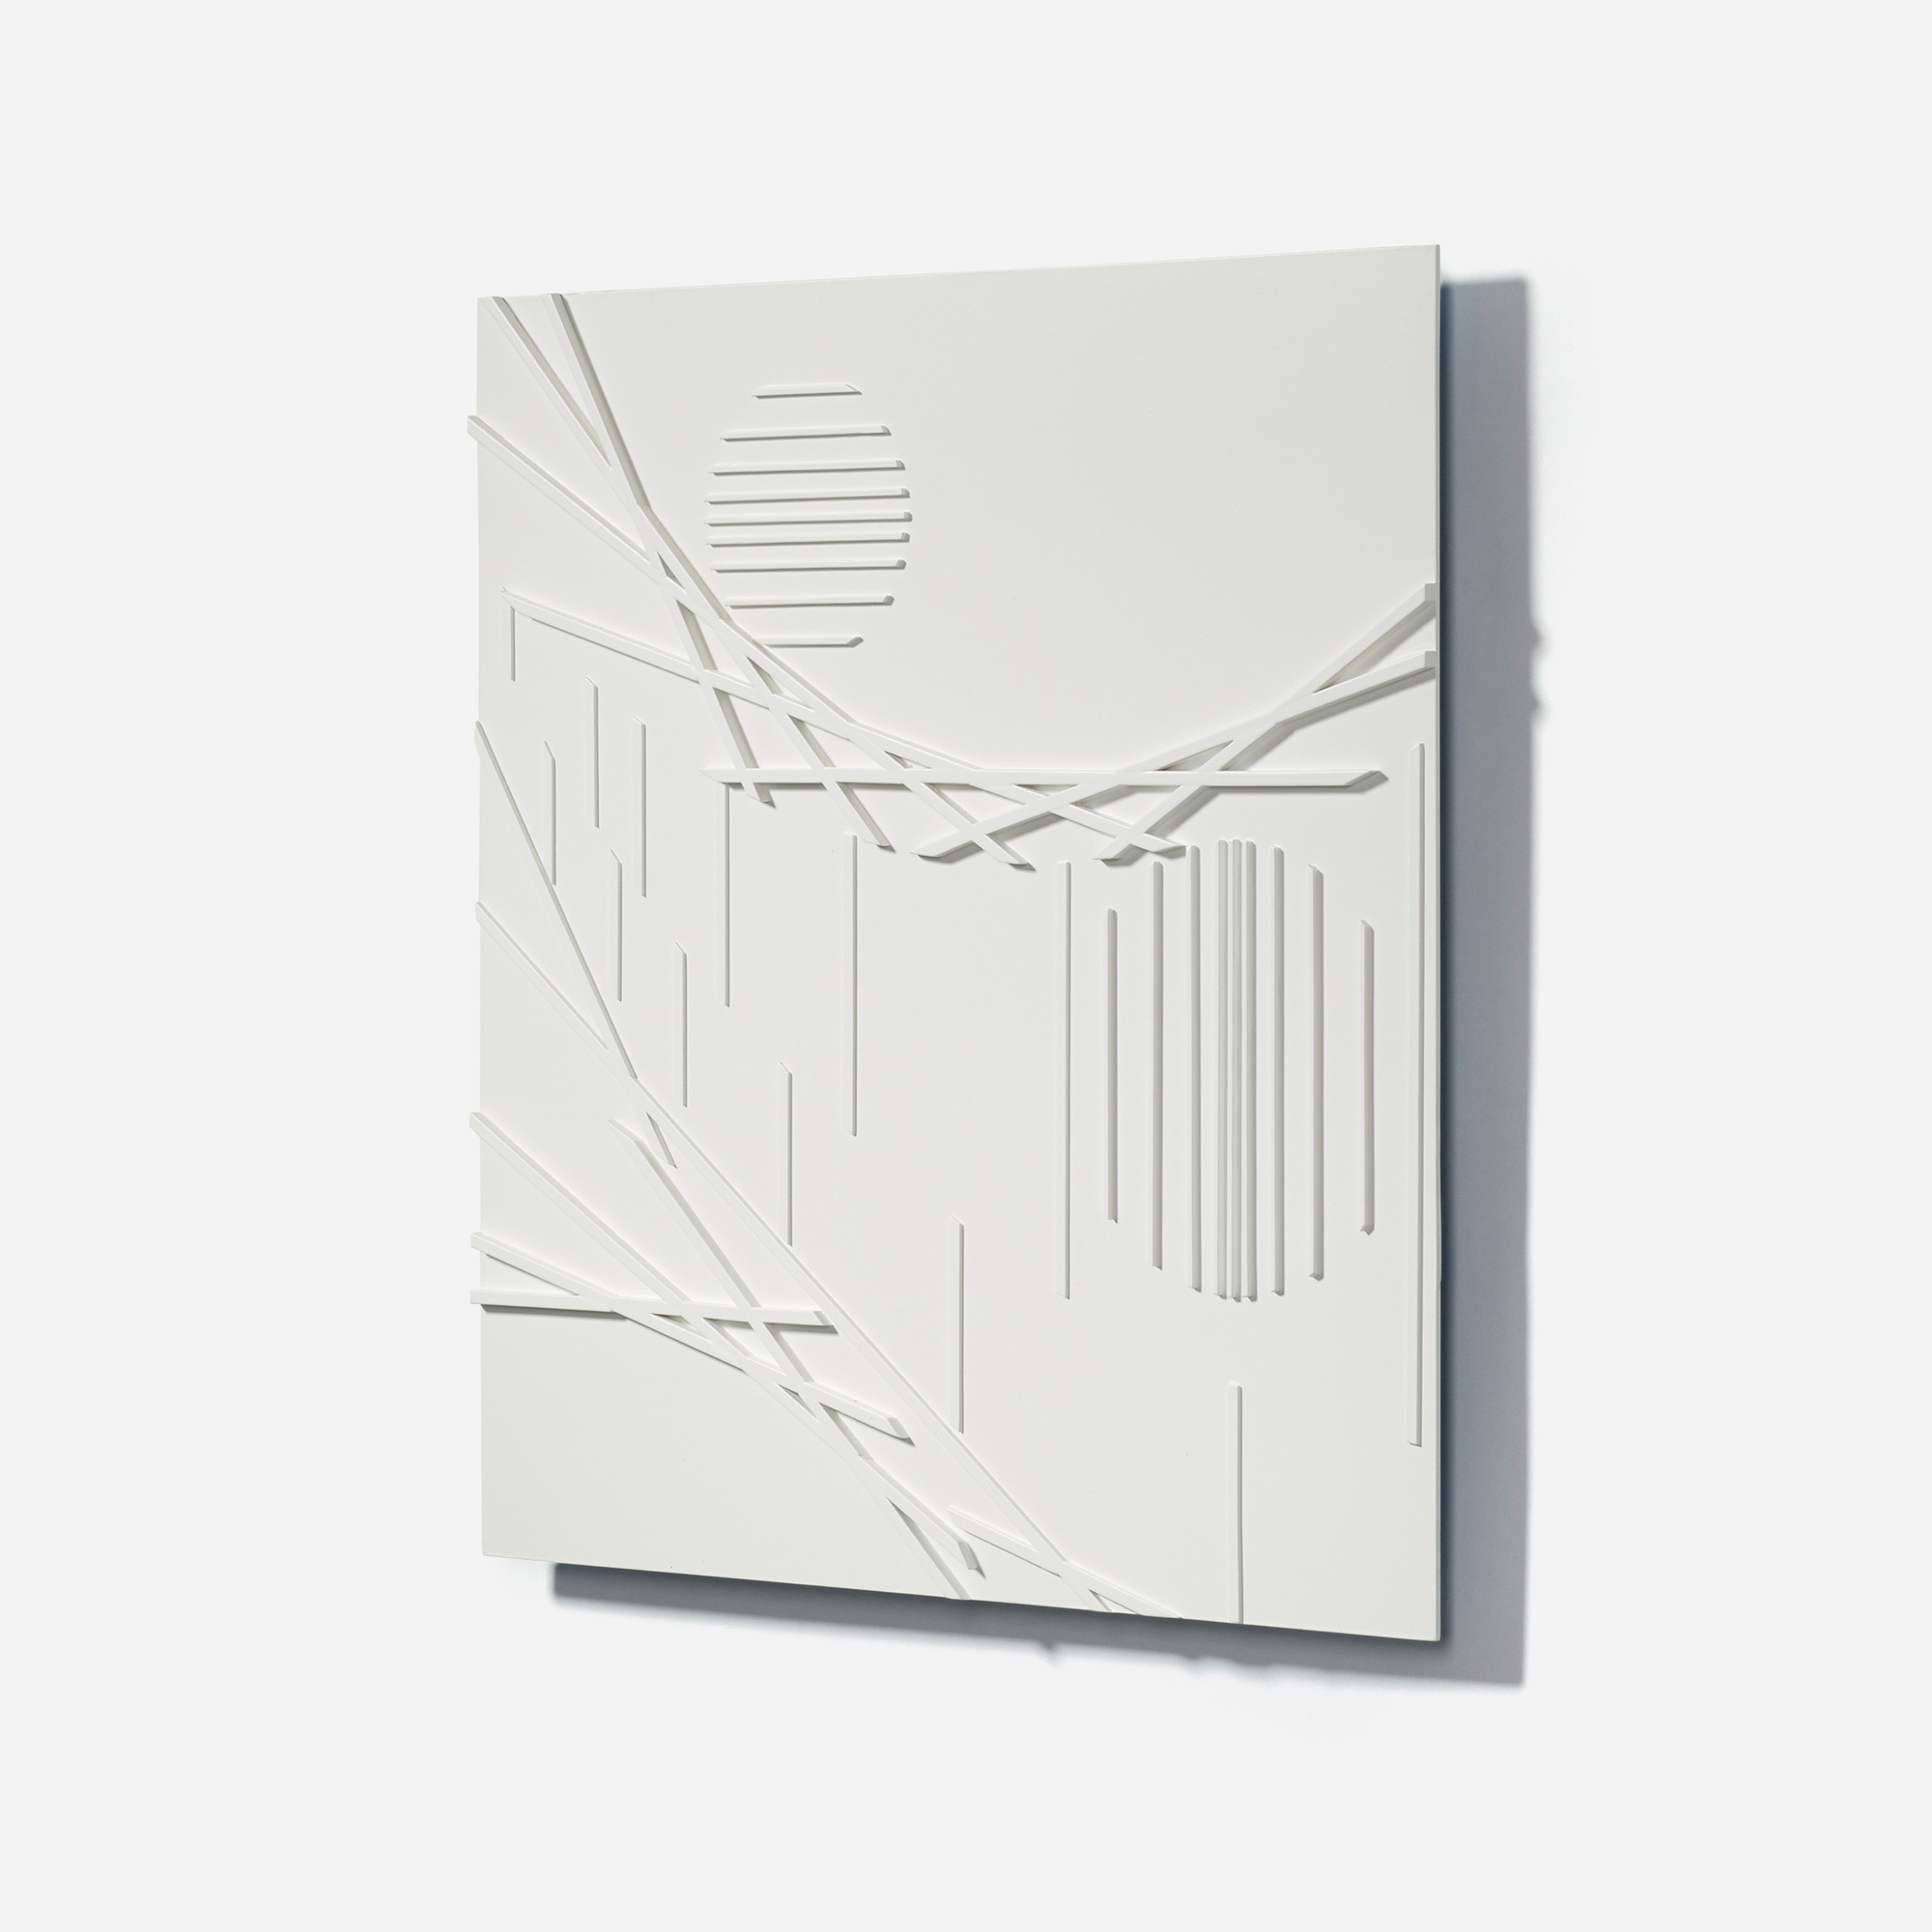 151: David Barr / Structurist Relief No. 360 (2 of 3)